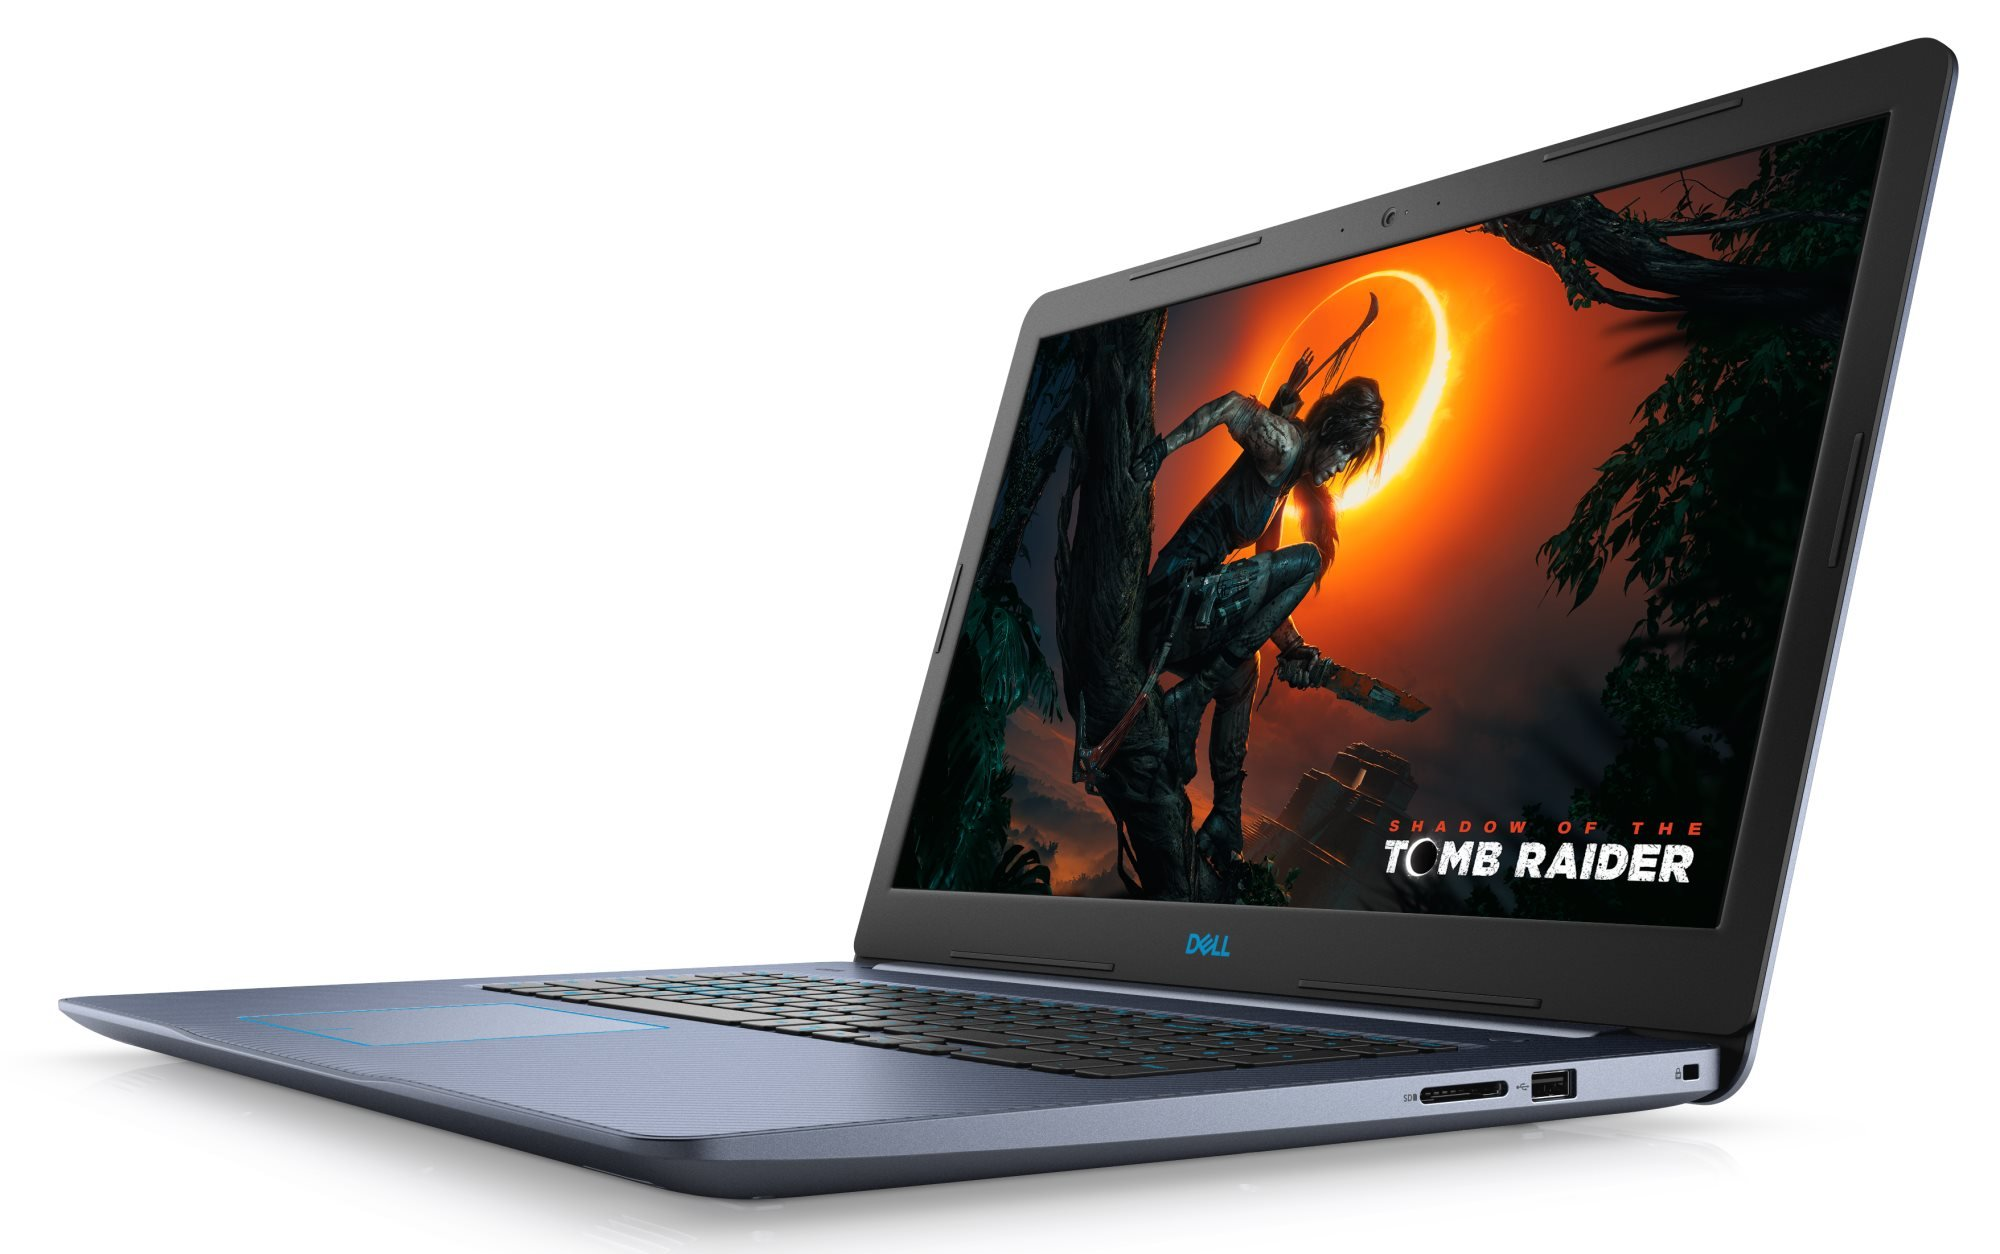 Best Gaming Laptop and PC Deals During Black Friday 2018